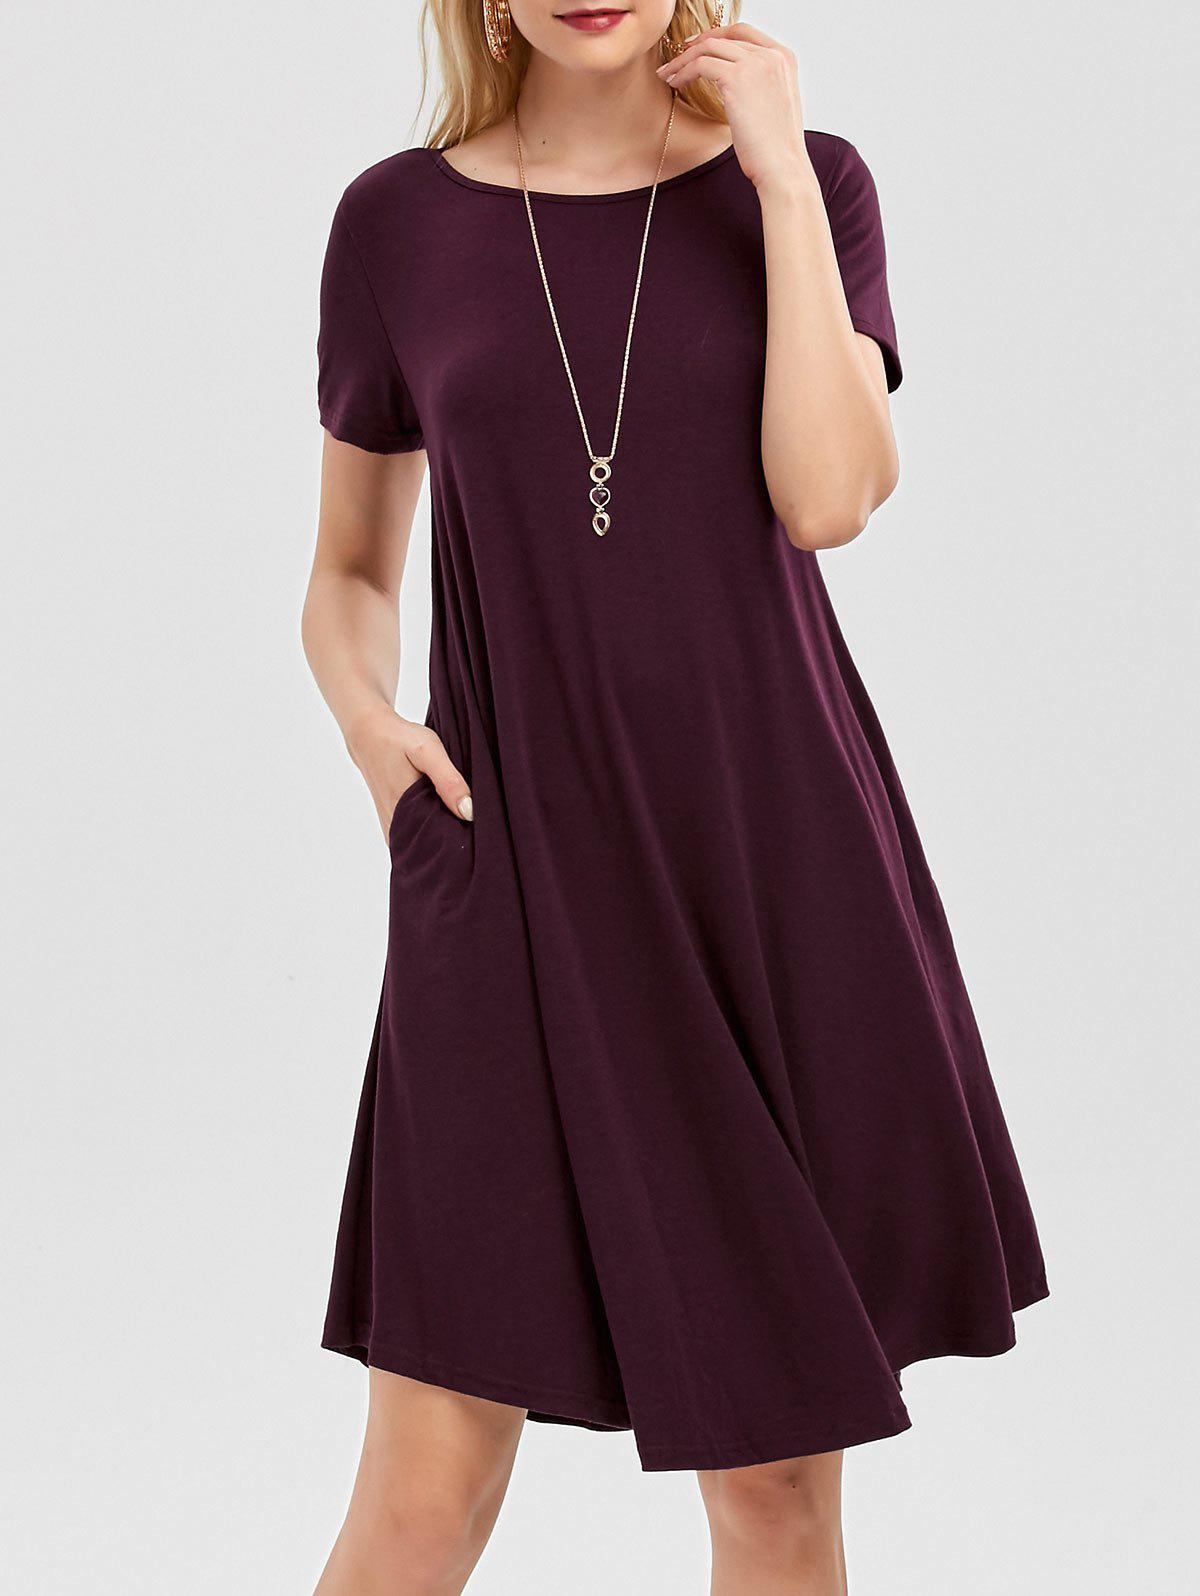 Short Sleeve A Line Dress with Pockets - CONCORD XL